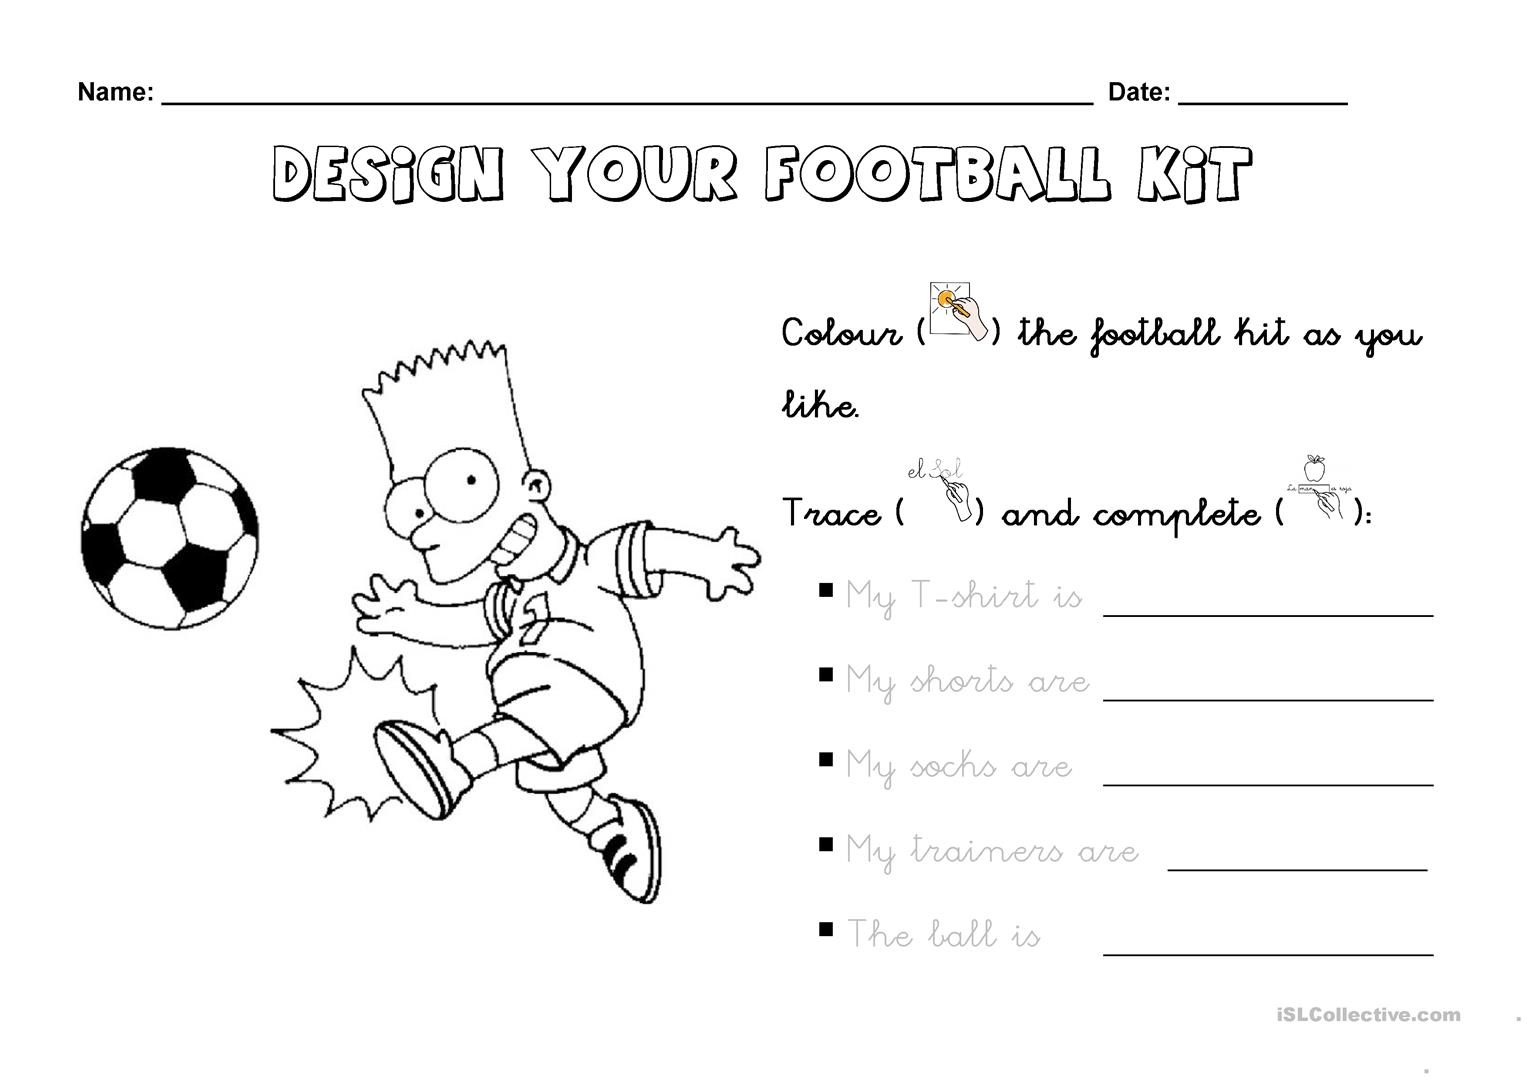 Design Your Fooitball Kit